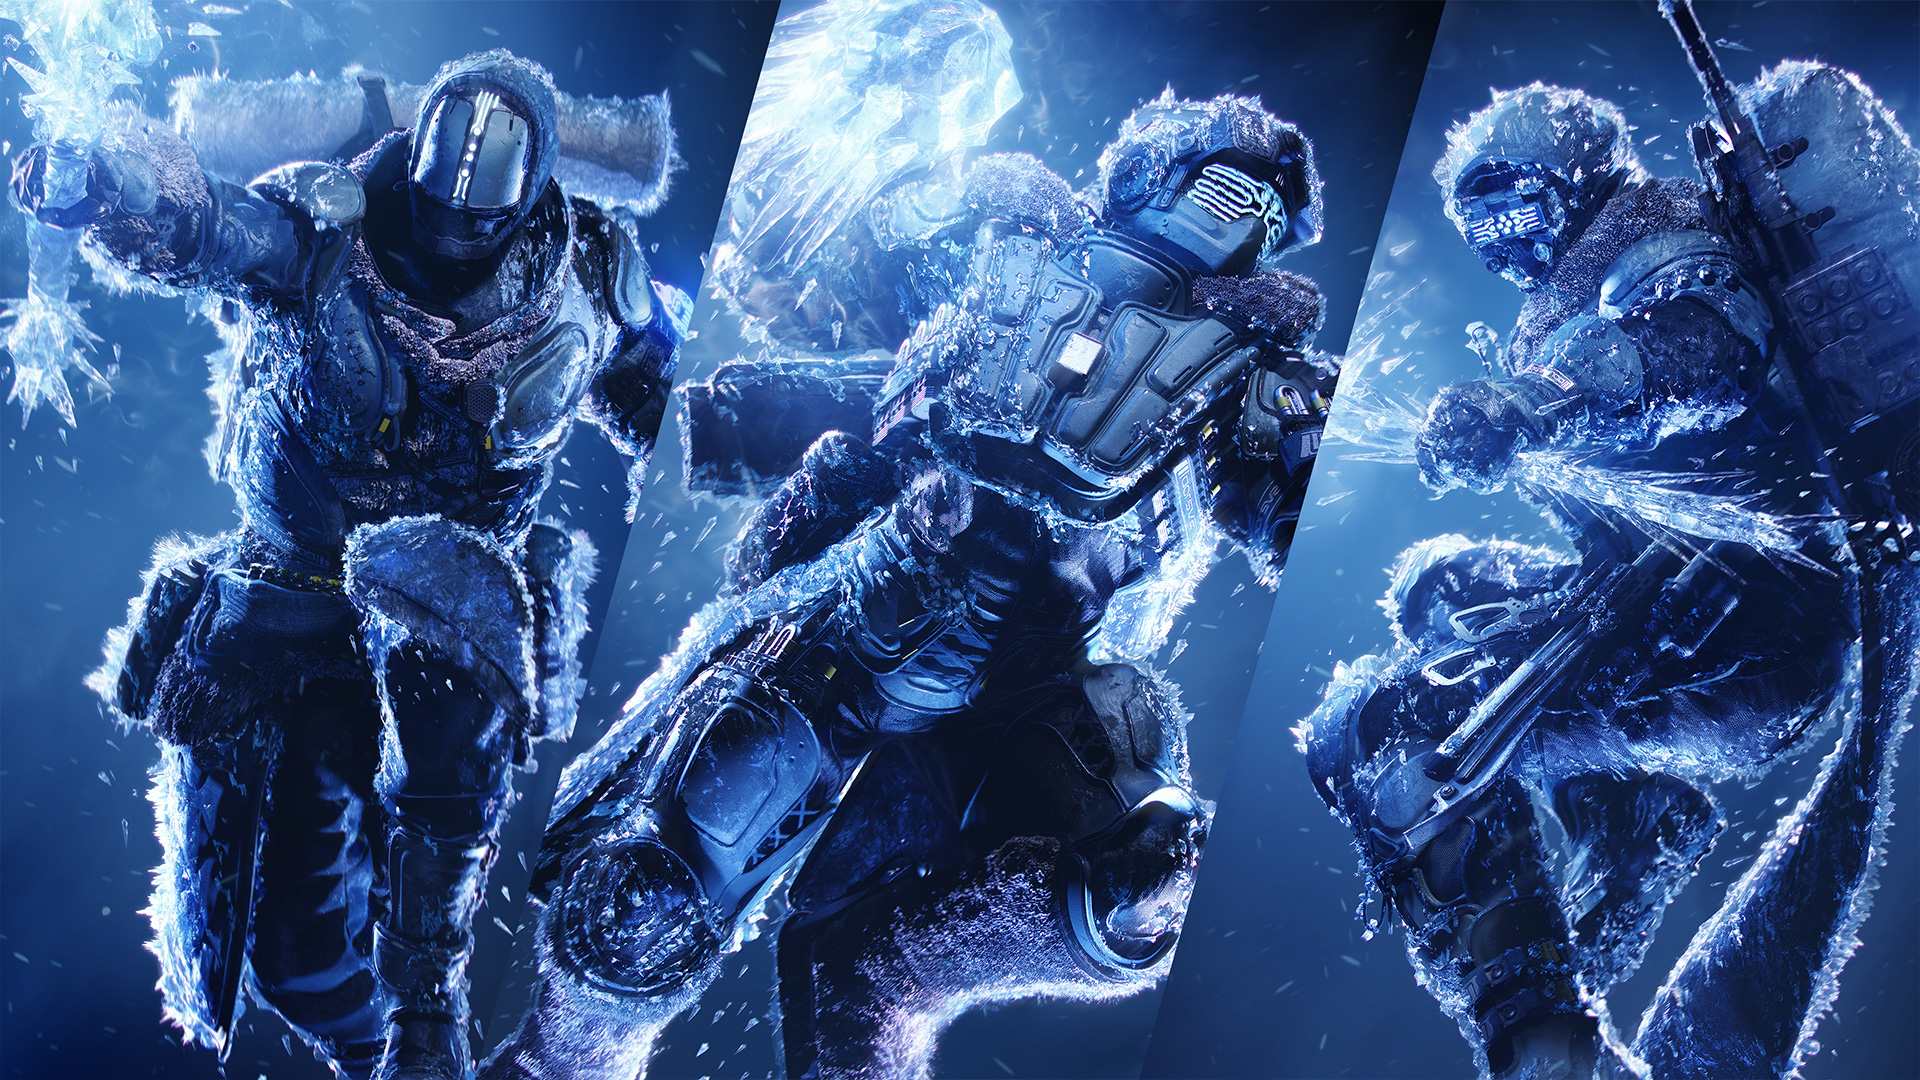 Game art for Destiny 2: Beyond Light, showing Guardians in a frozen Europa setting